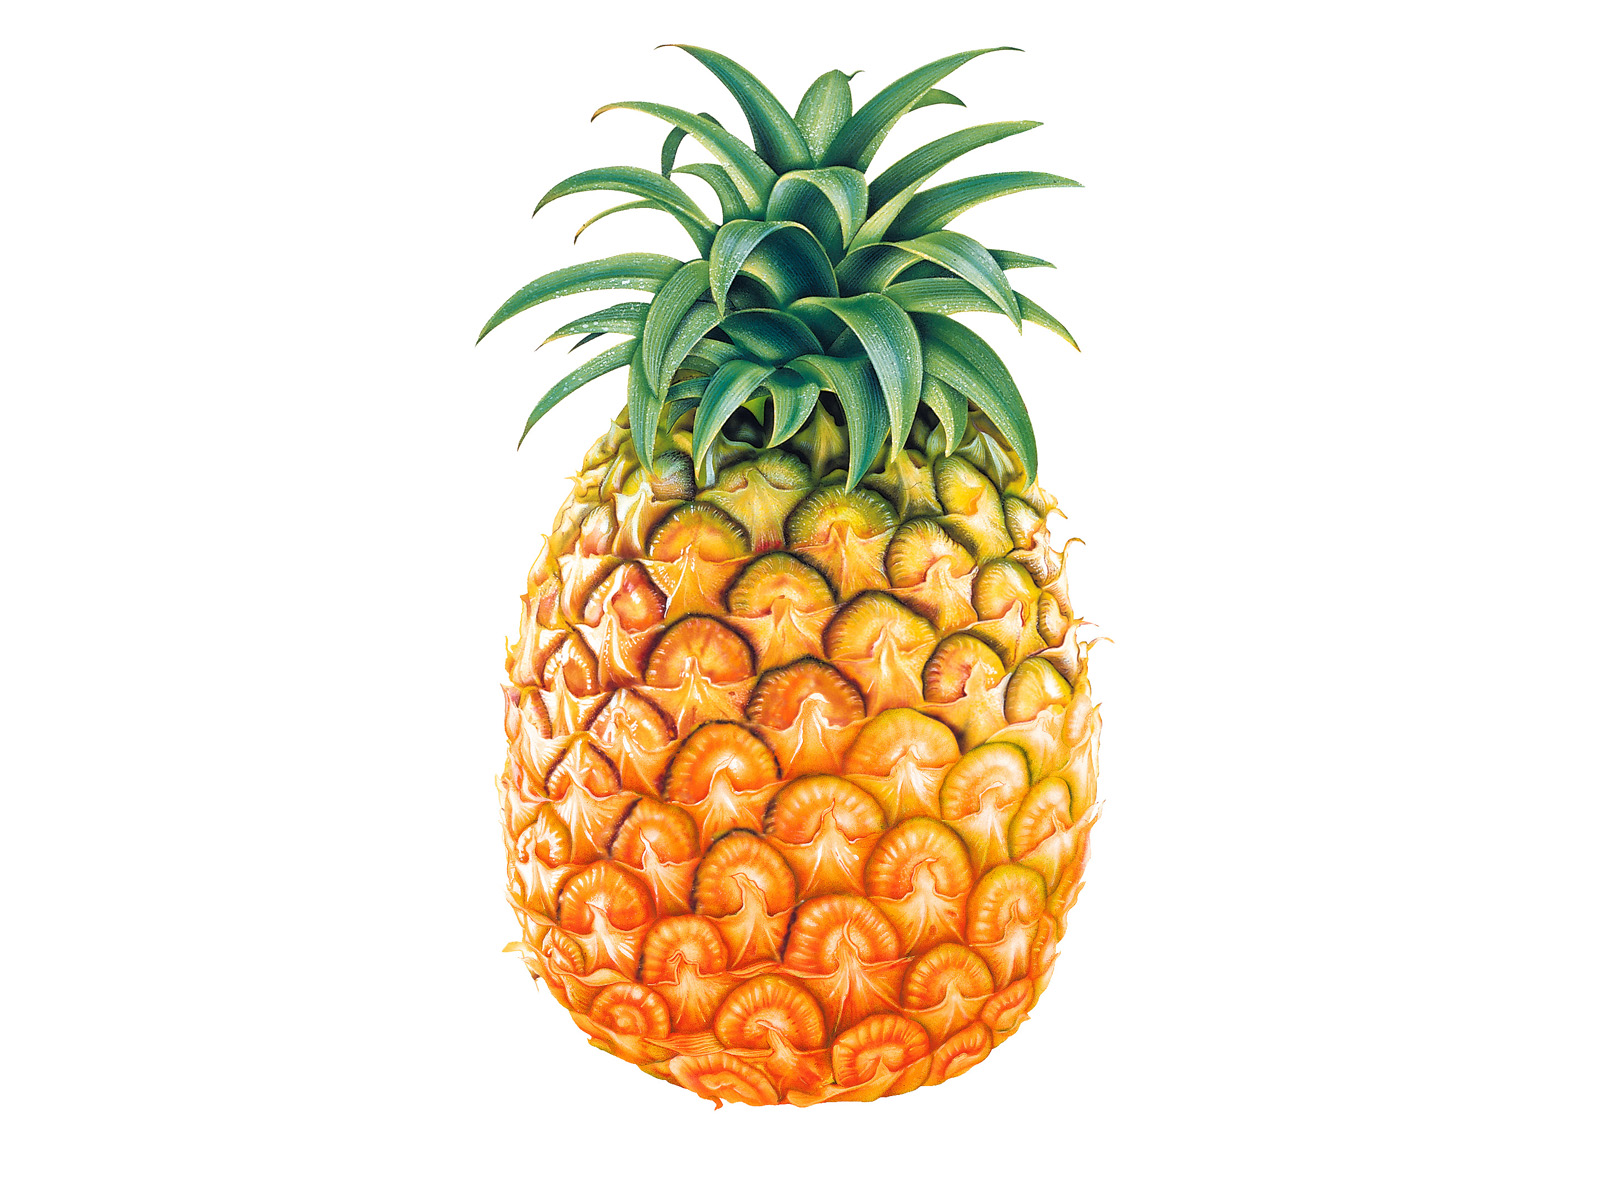 Pineapple Tropical Plant 454.27 Kb